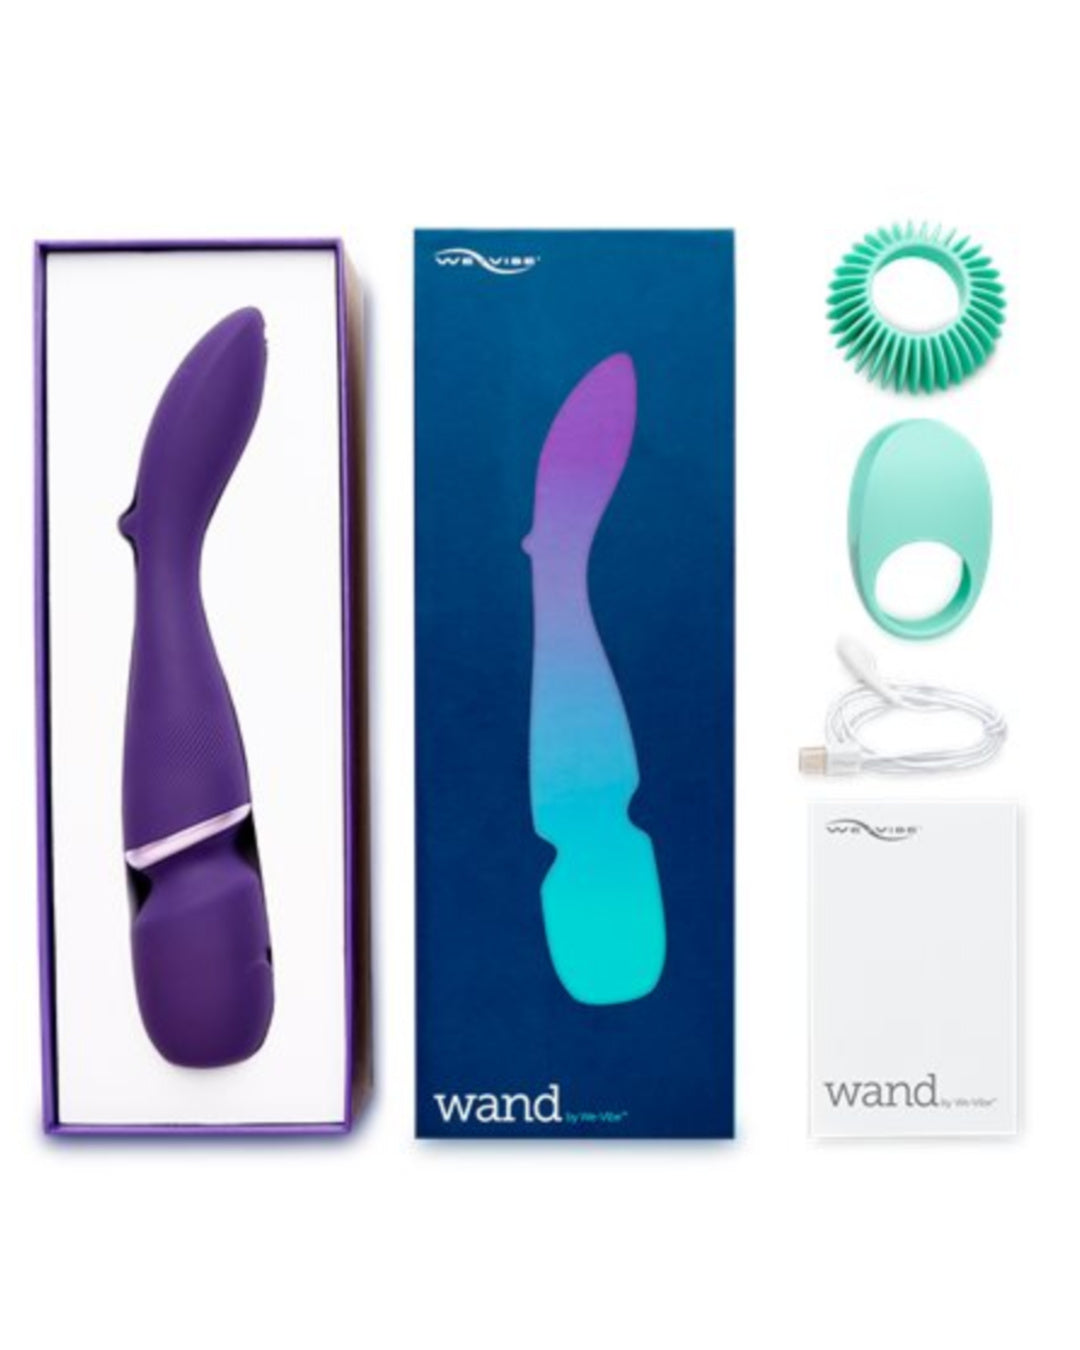 We-Vibe Wand Cordless Waterproof Rechargeable Wand Vibrator in the box with the two attachments